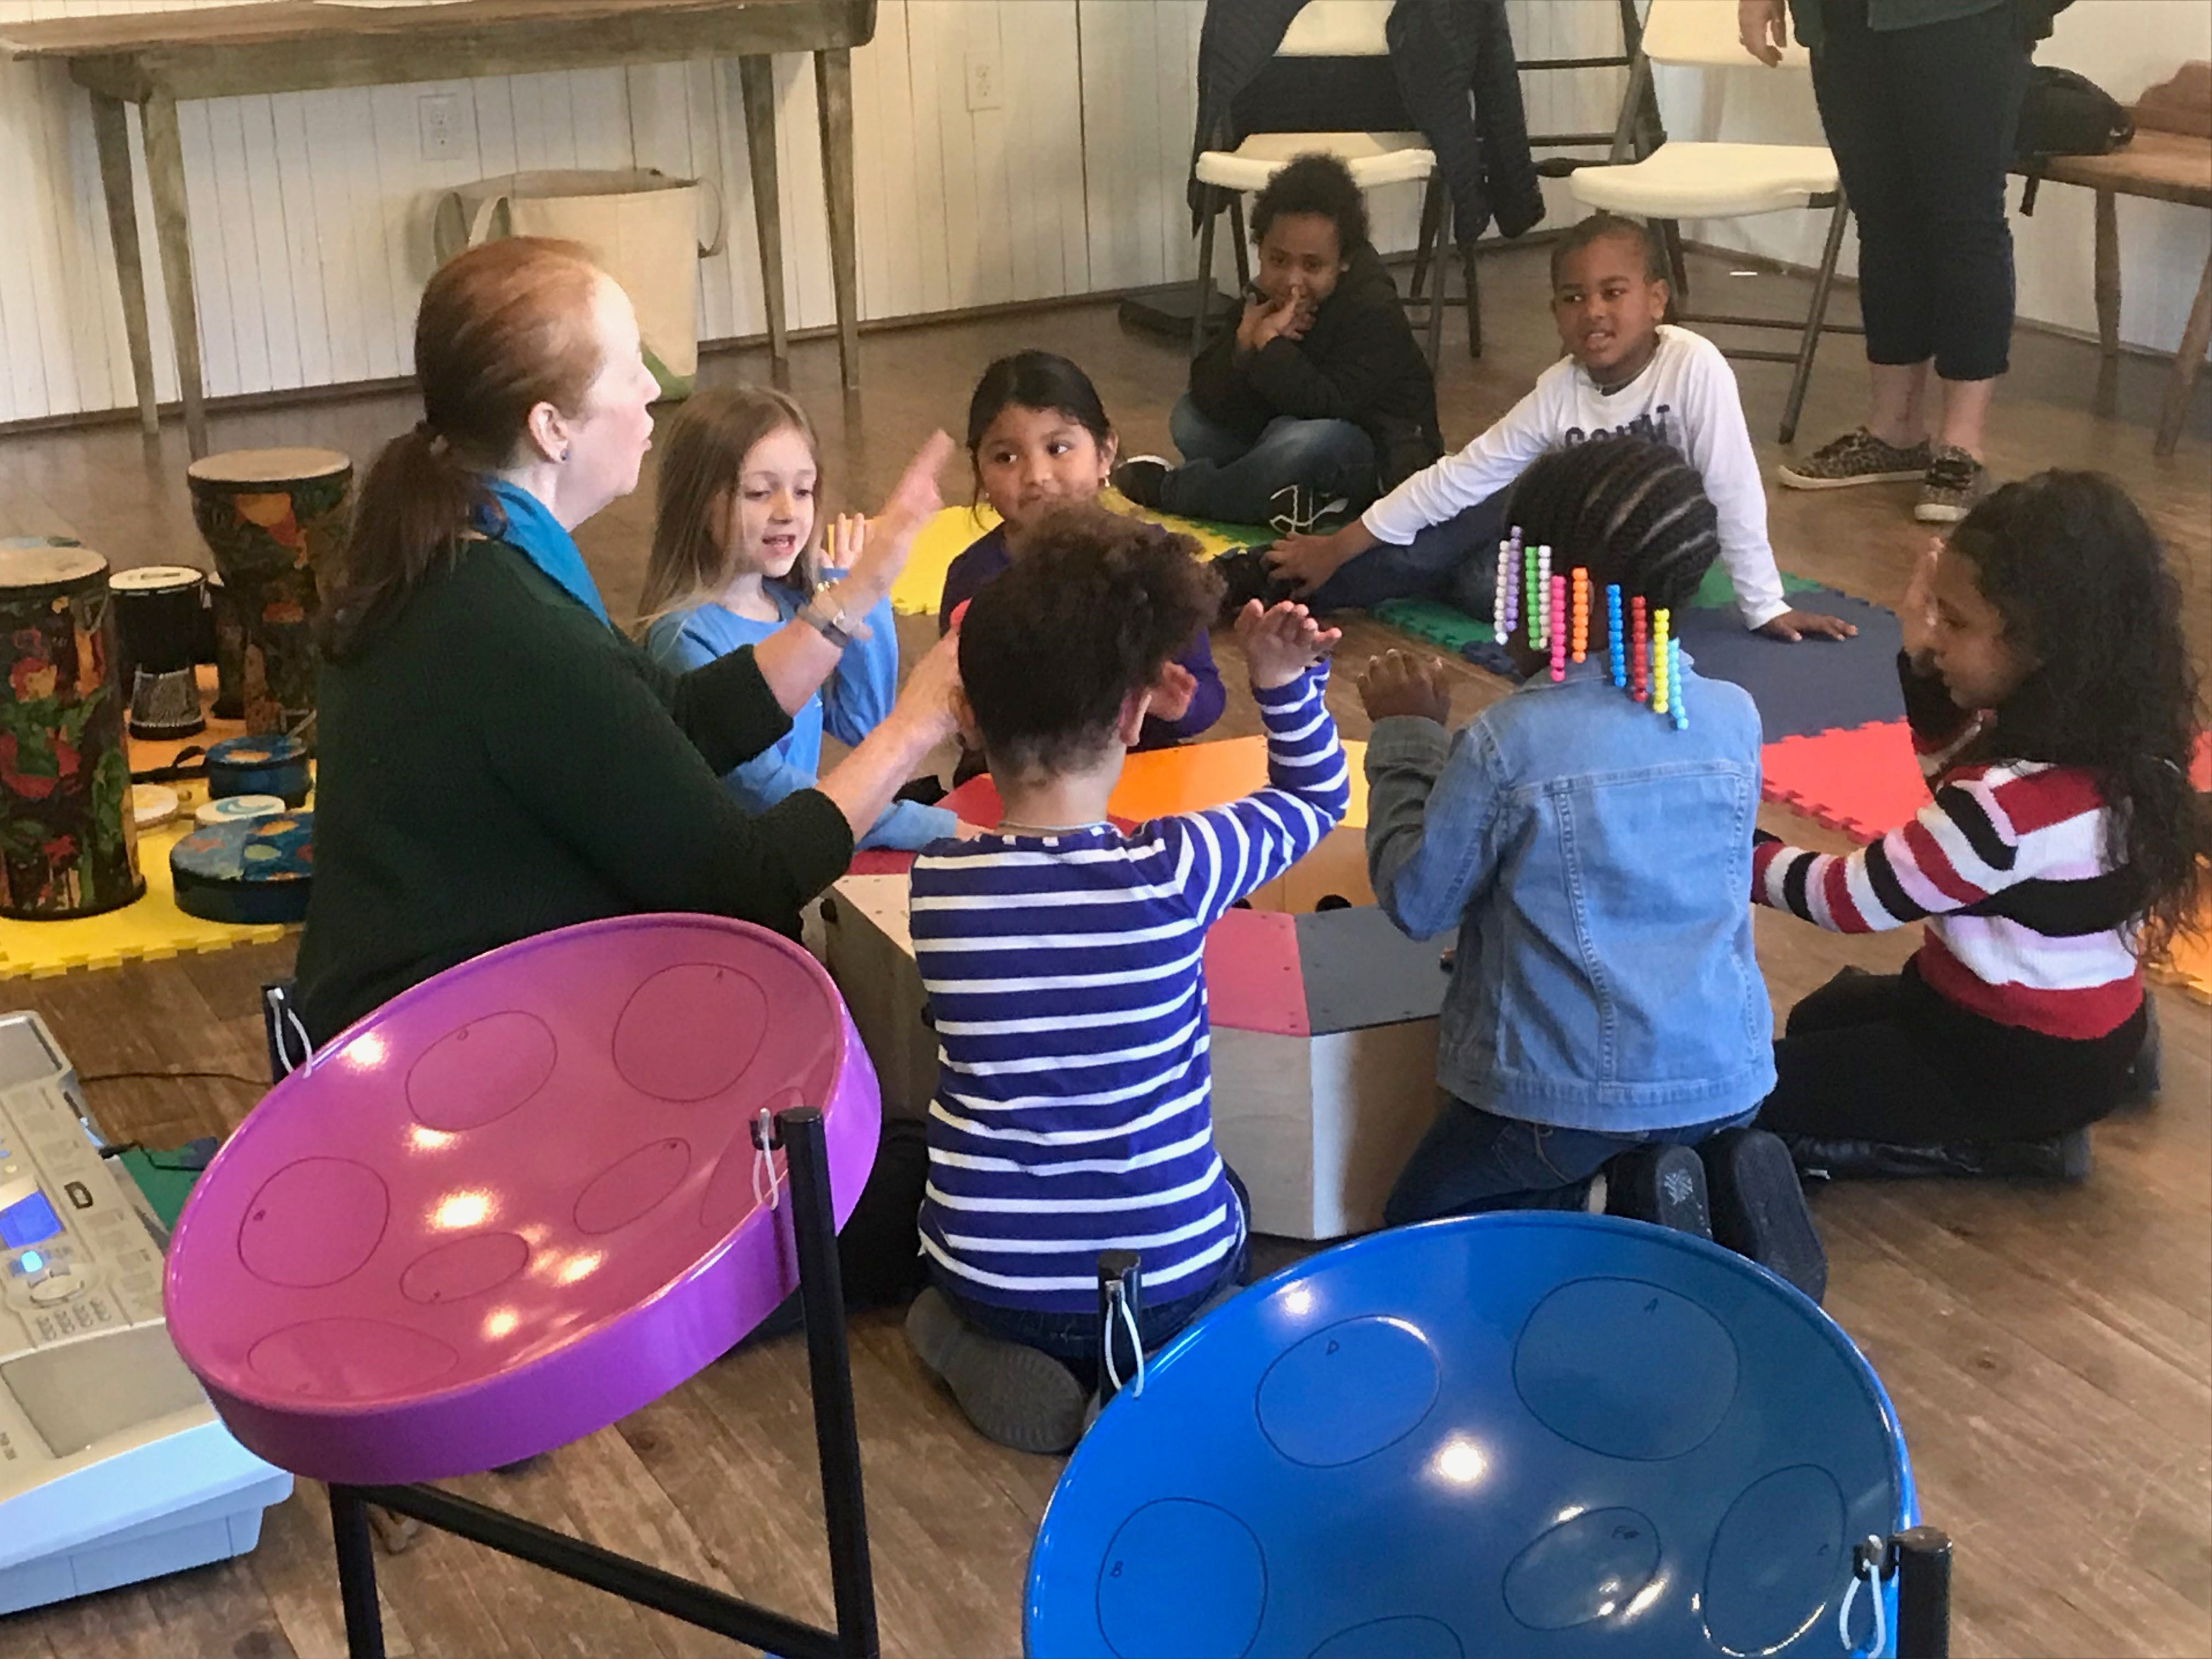 Pre-kindergarten students from Occohannock Elementary School play a large drum together during  a My First Field Trip event at the Barrier Islands Center in Machipongo, Virginia on Tuesday, March 26, 2019.